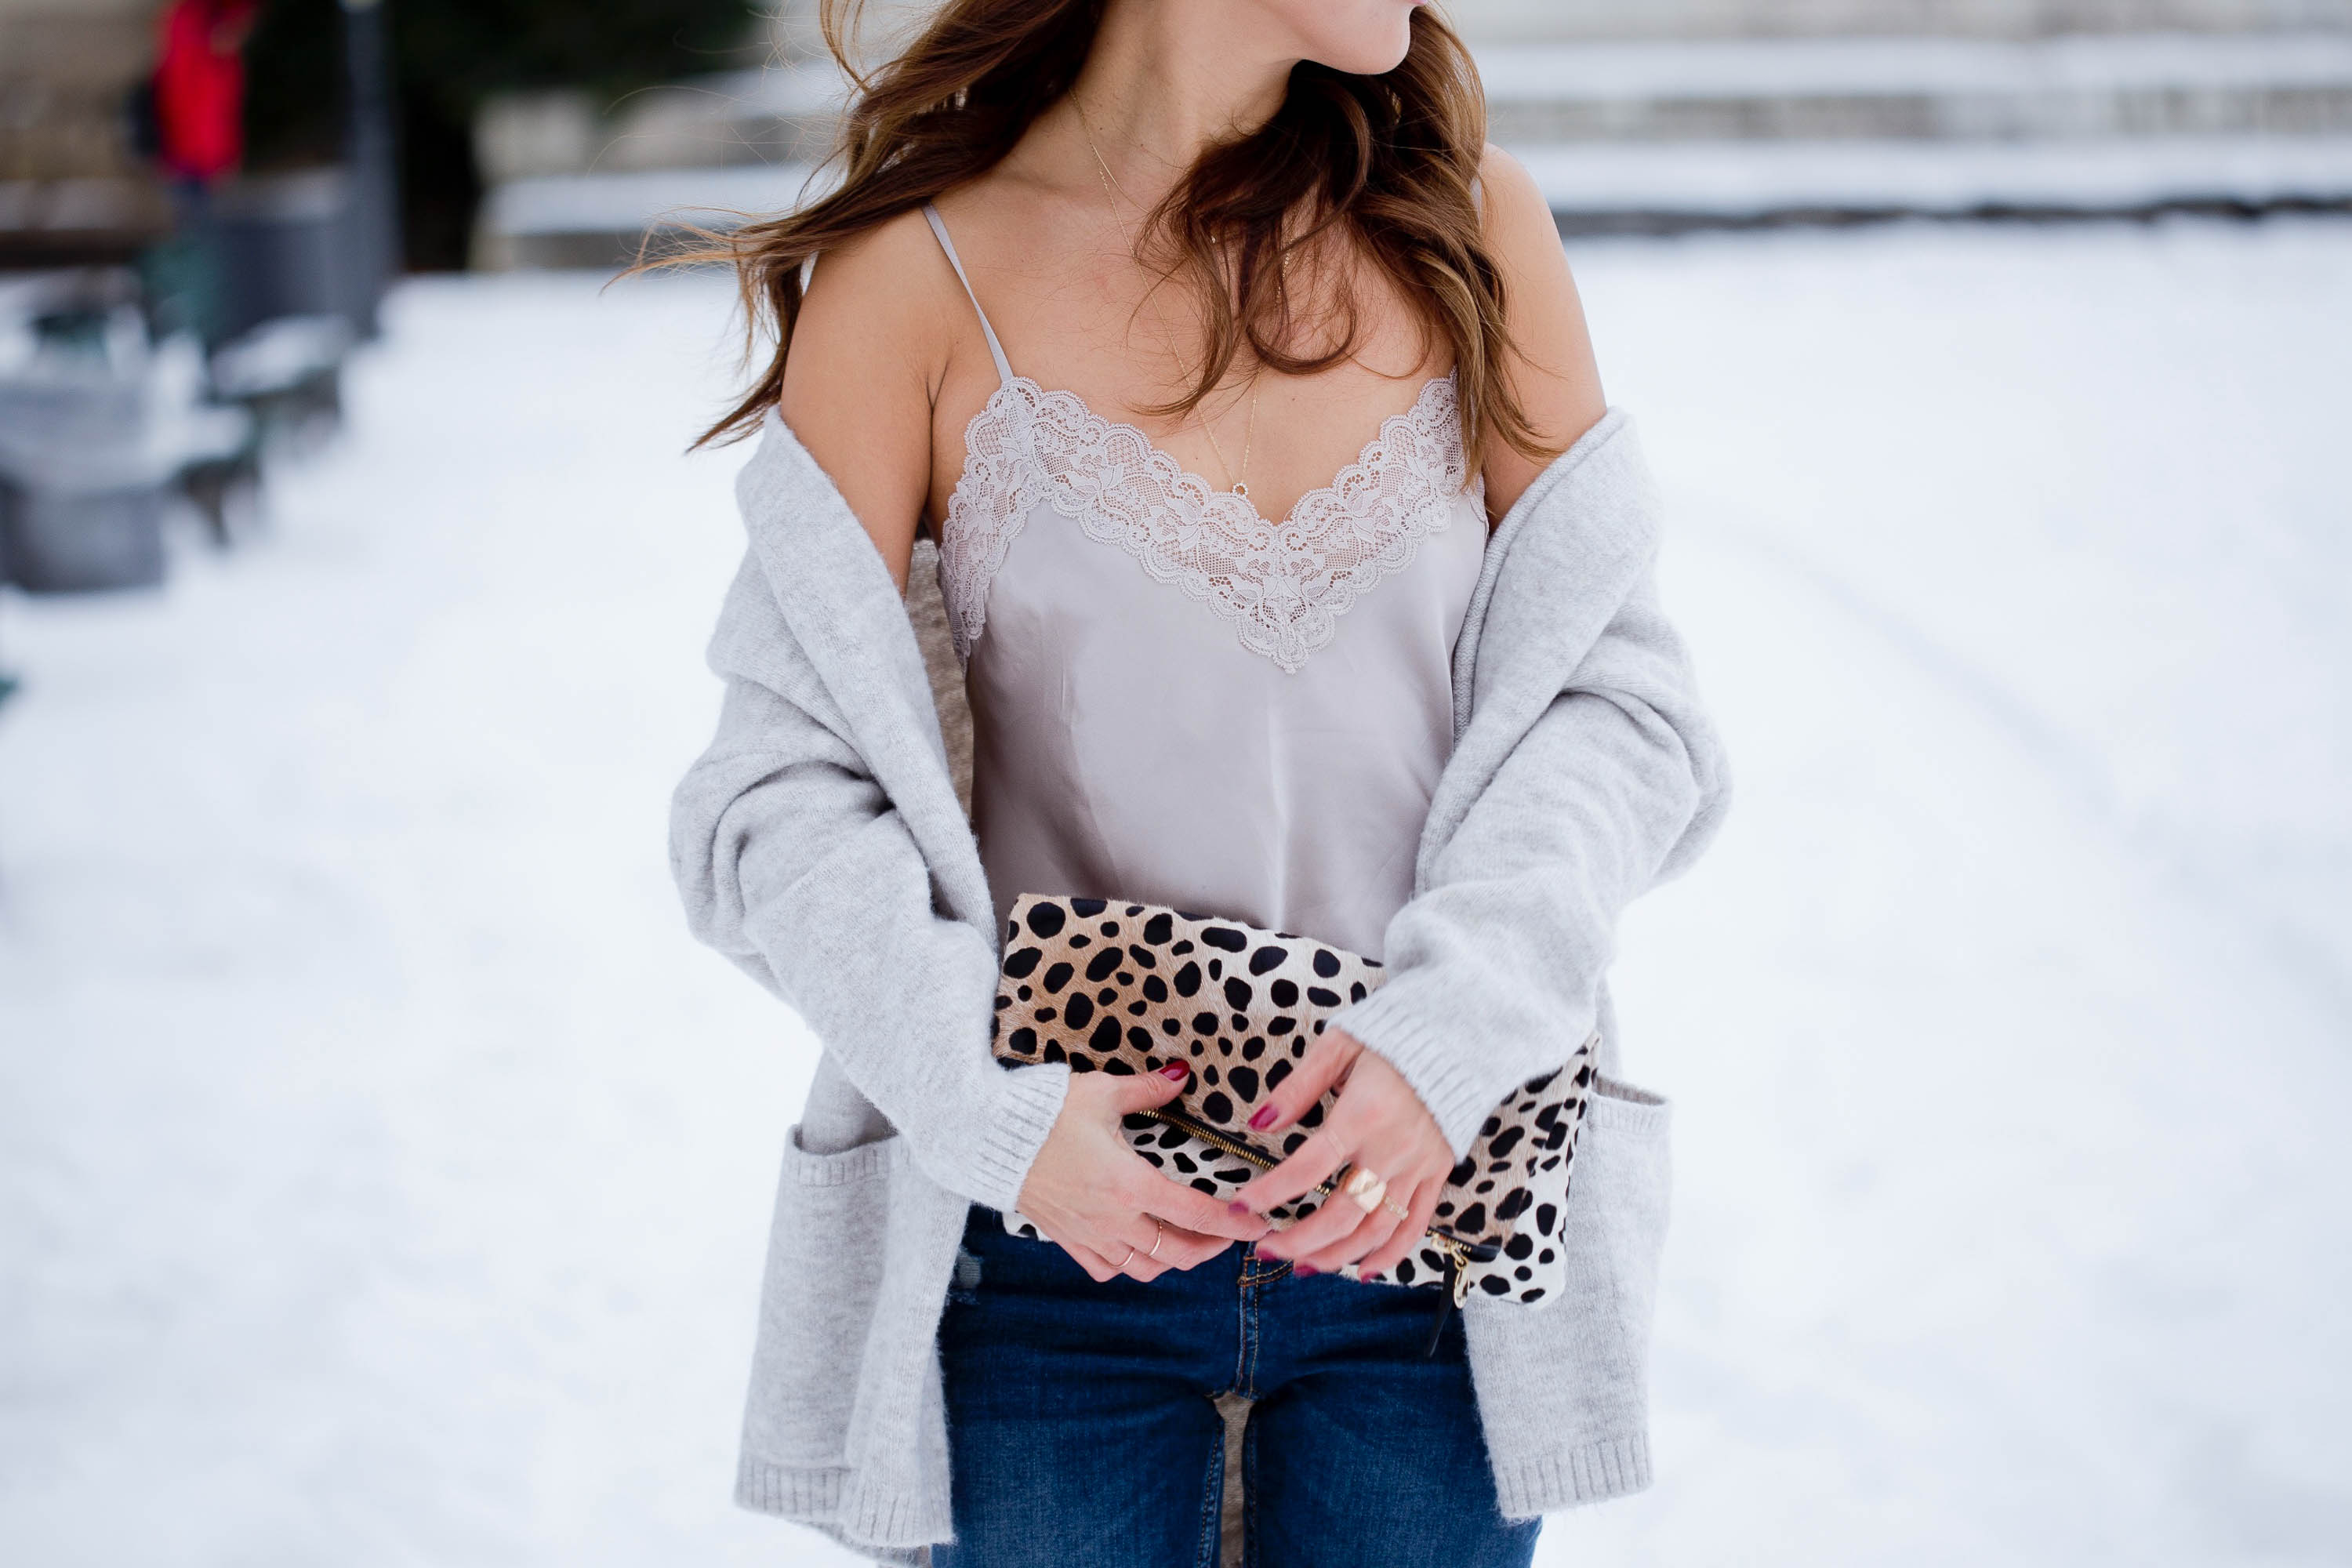 theclassycloud-shearling-jacket-camisole-winter-outfit (3 von 6)